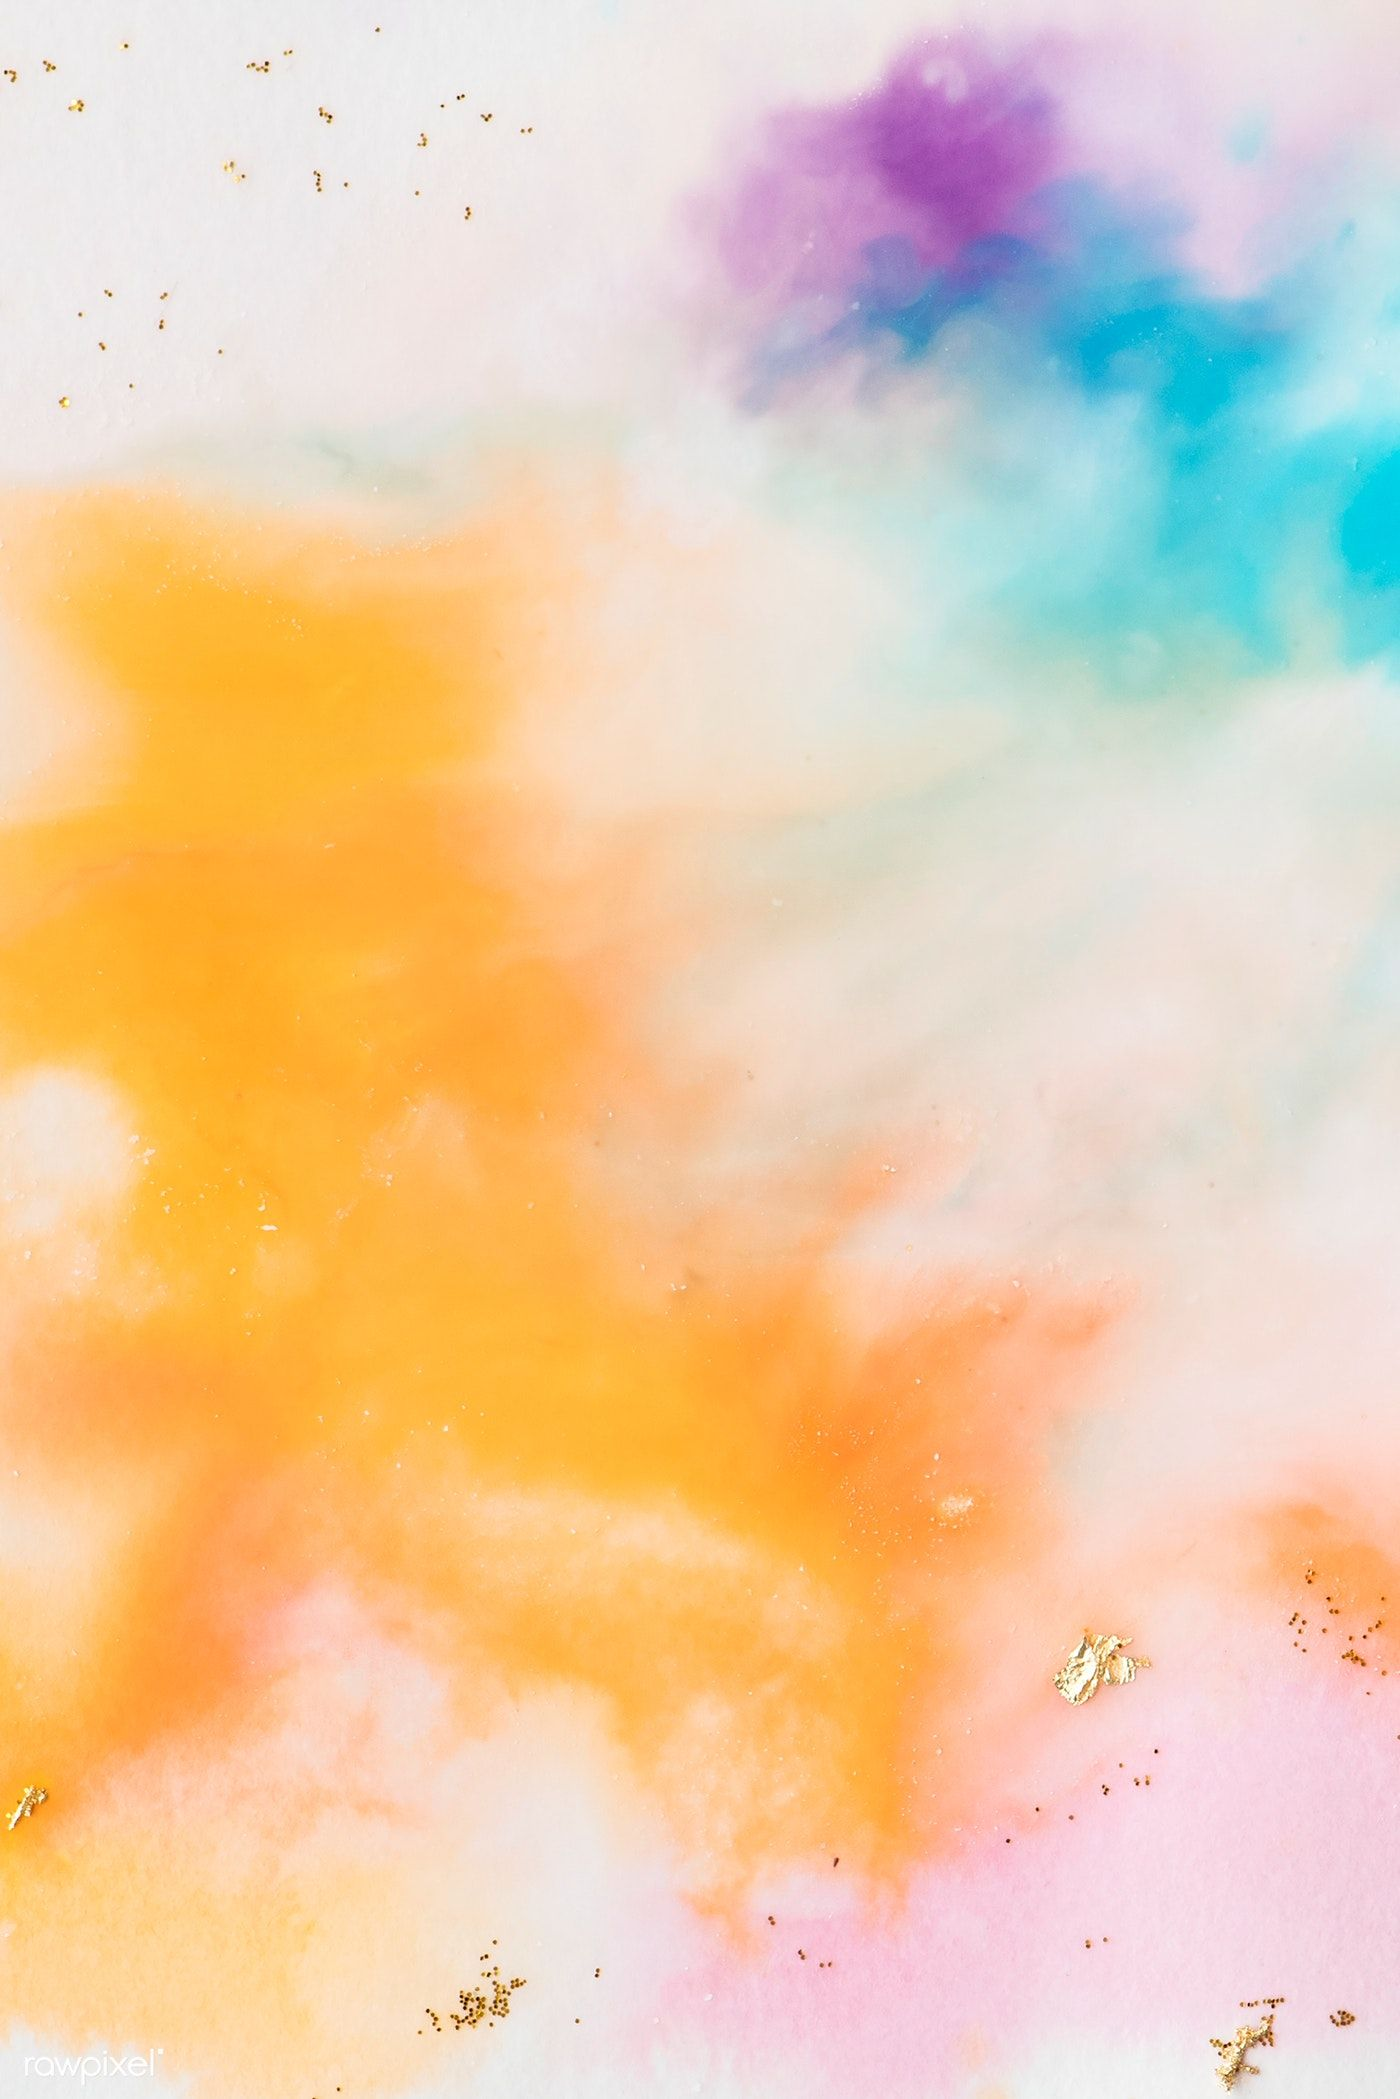 Multicolor Watercolor Splash Background Illustration Vector 05